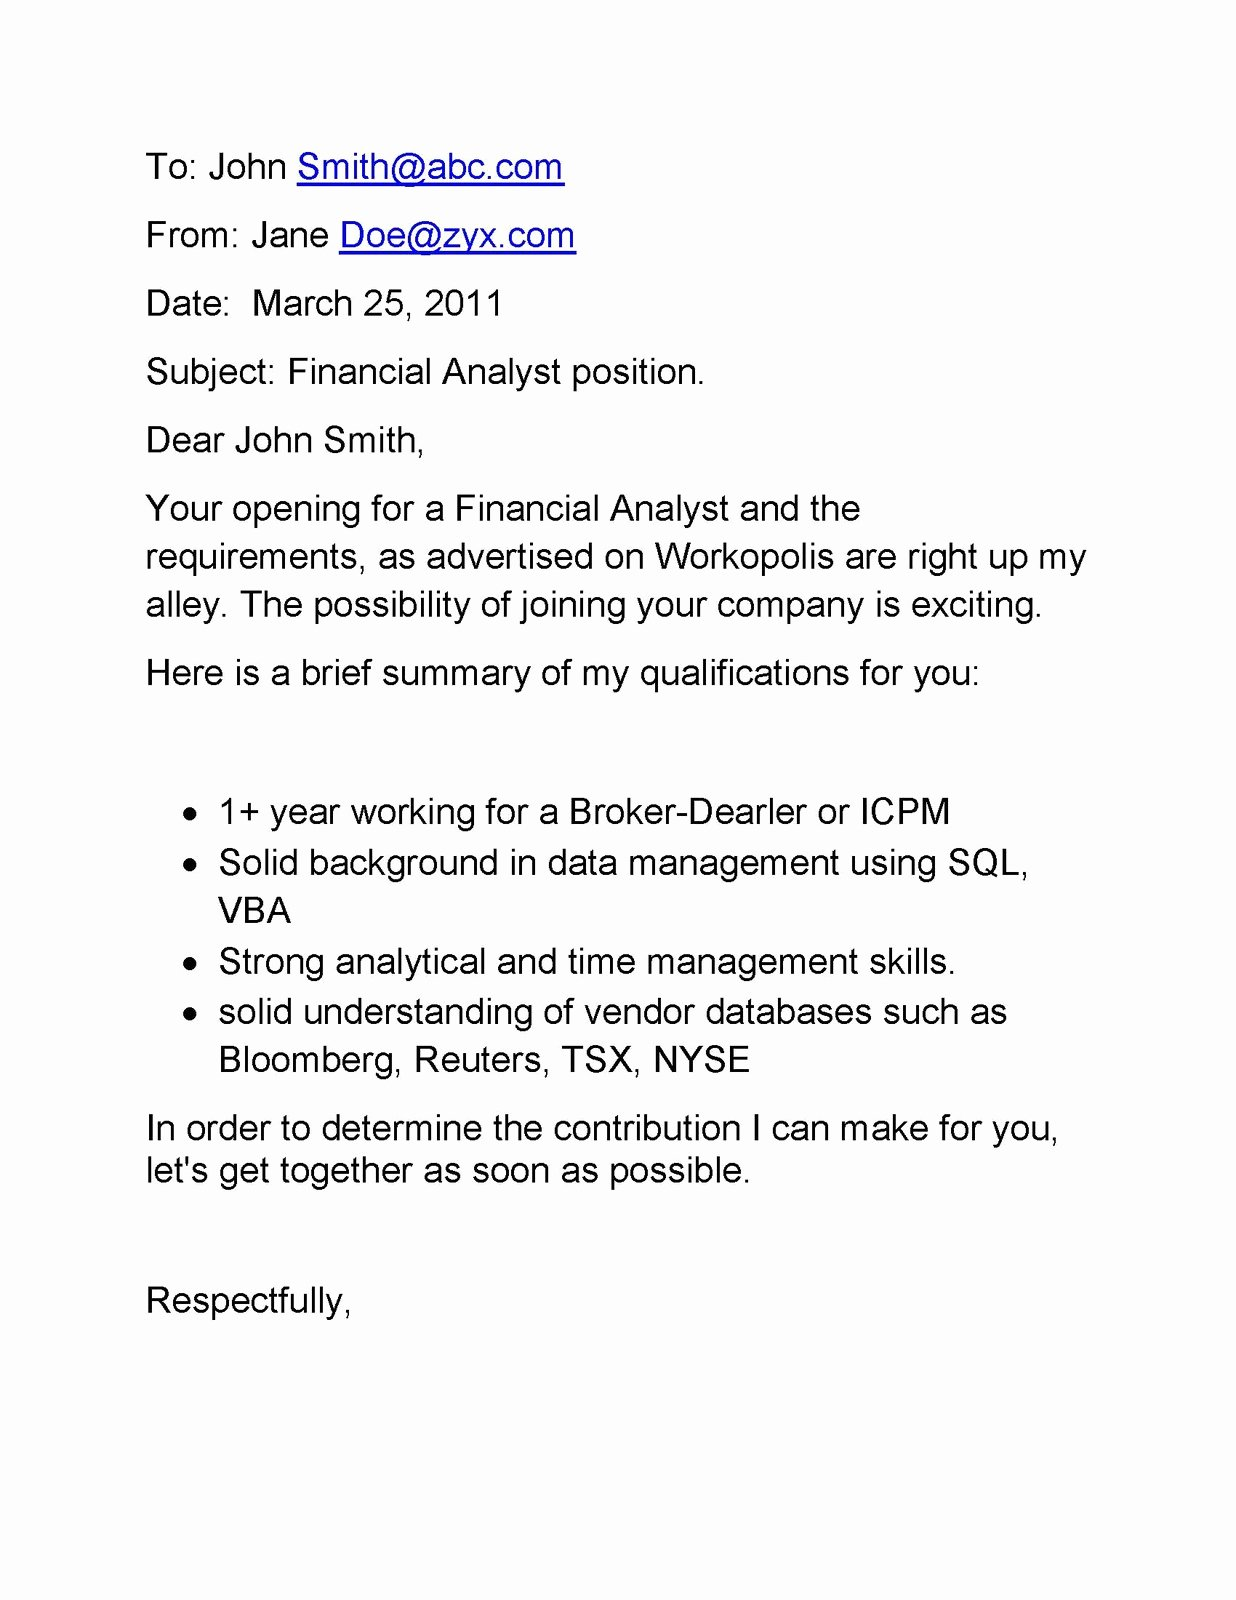 Email Cover Letter Samples Email Cover Letter for